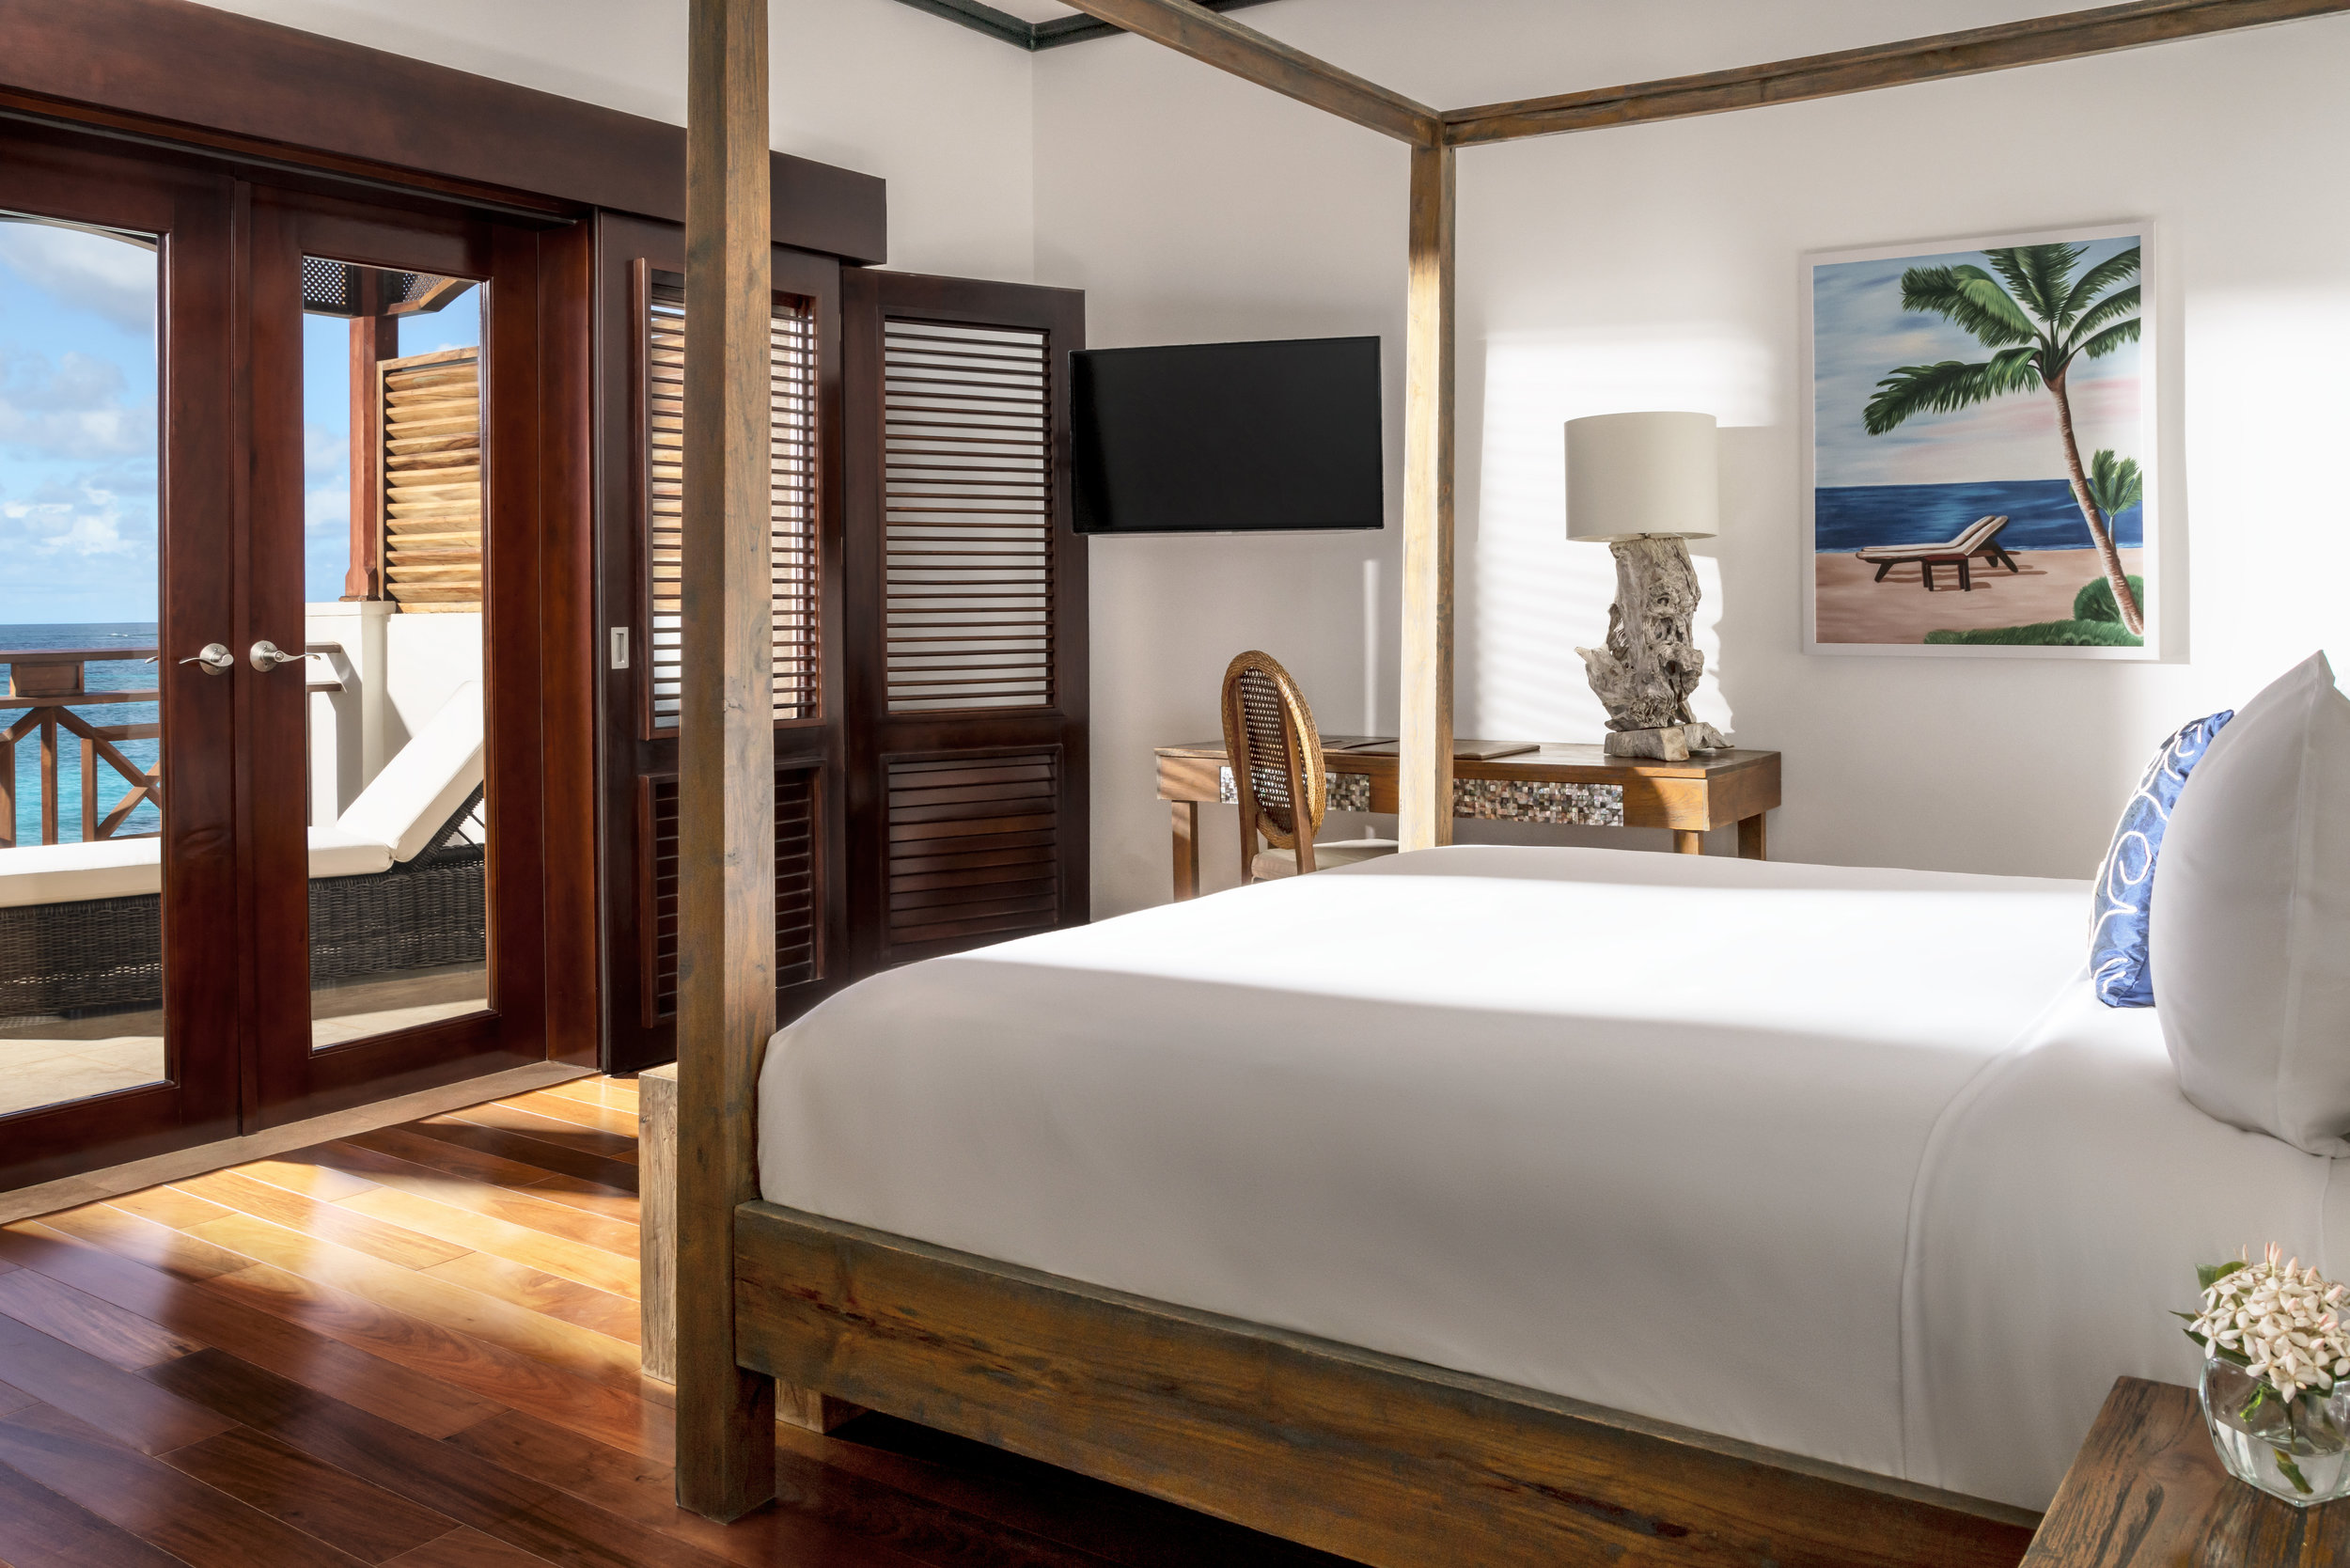 20151026_Zemi_bldg1_3bd_Master_Bedroom.jpg